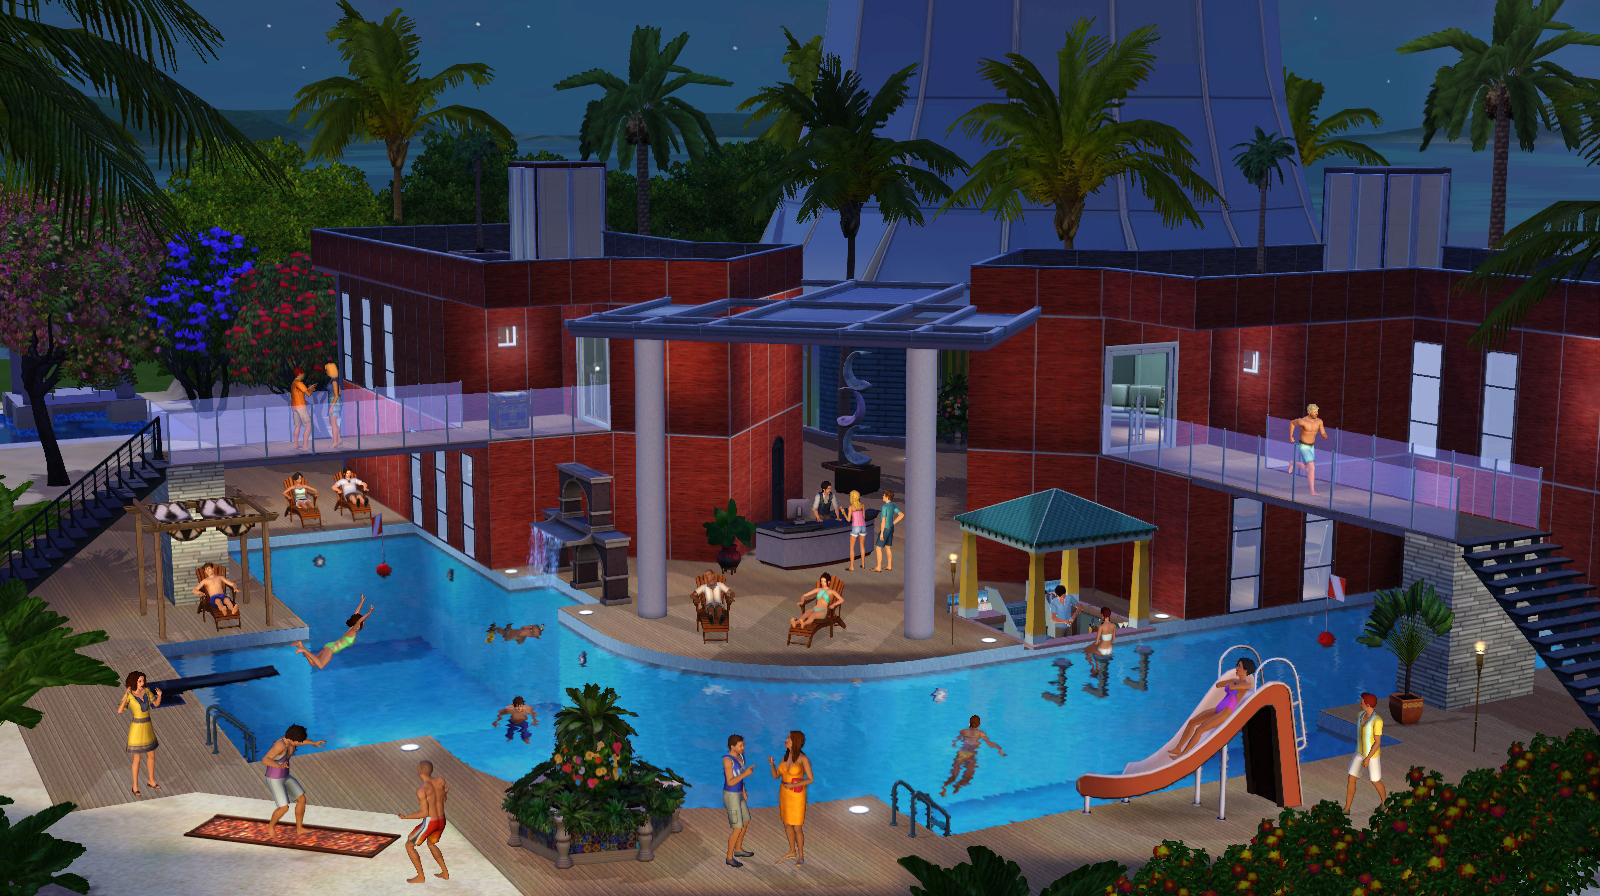 Sims3 island paradise images islan resort hd wallpaper and background photos 35363594 - The sims 3 case moderne ...